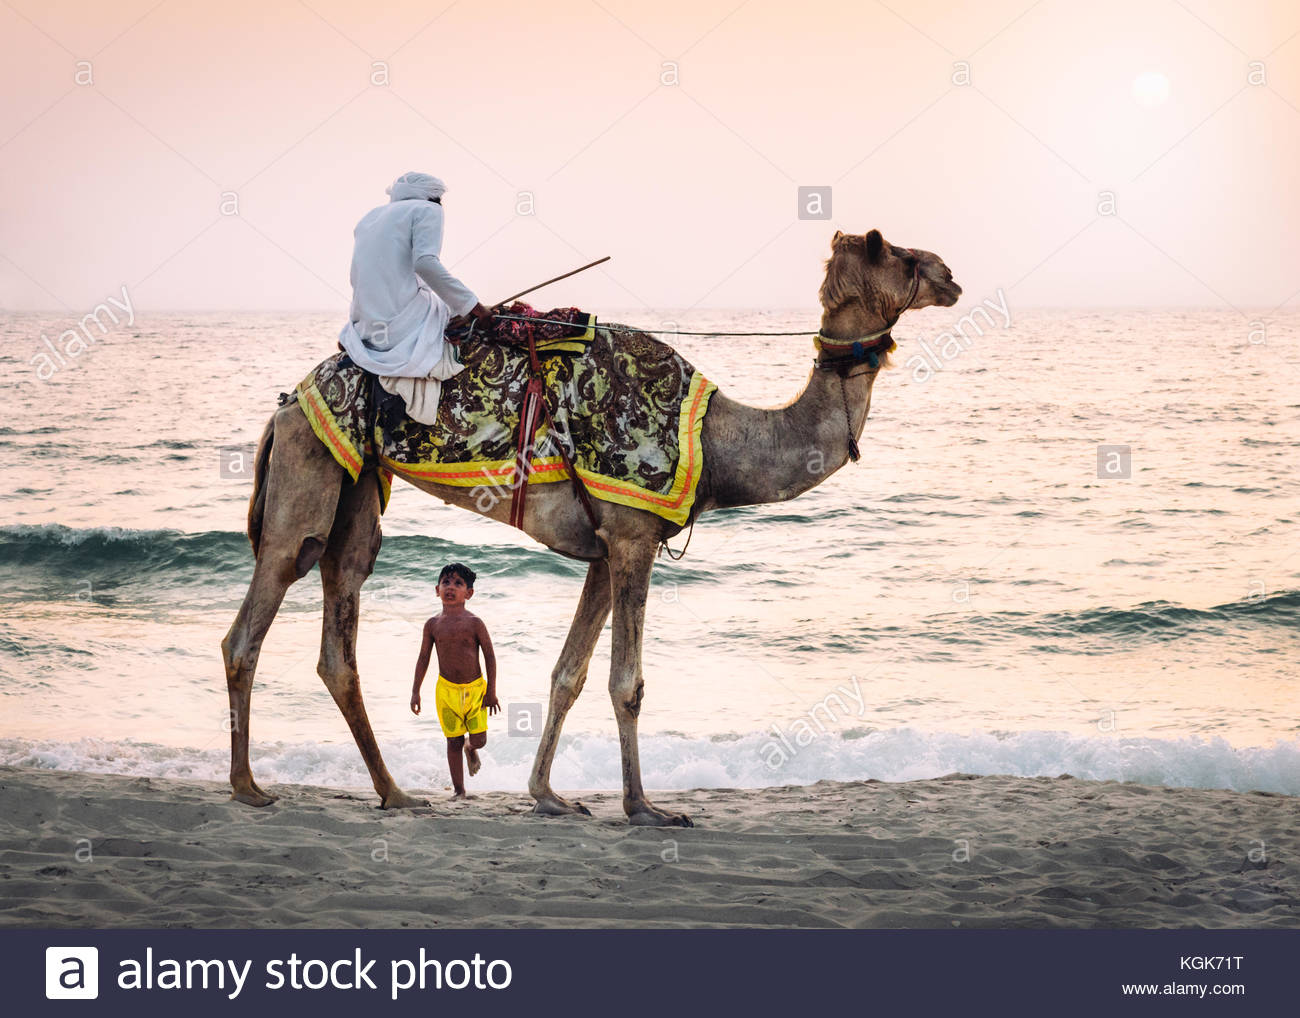 boy-stares-up-in-amazement-at-arabic-man-wearing-a-traditional-thawb-KGK71T.jpg